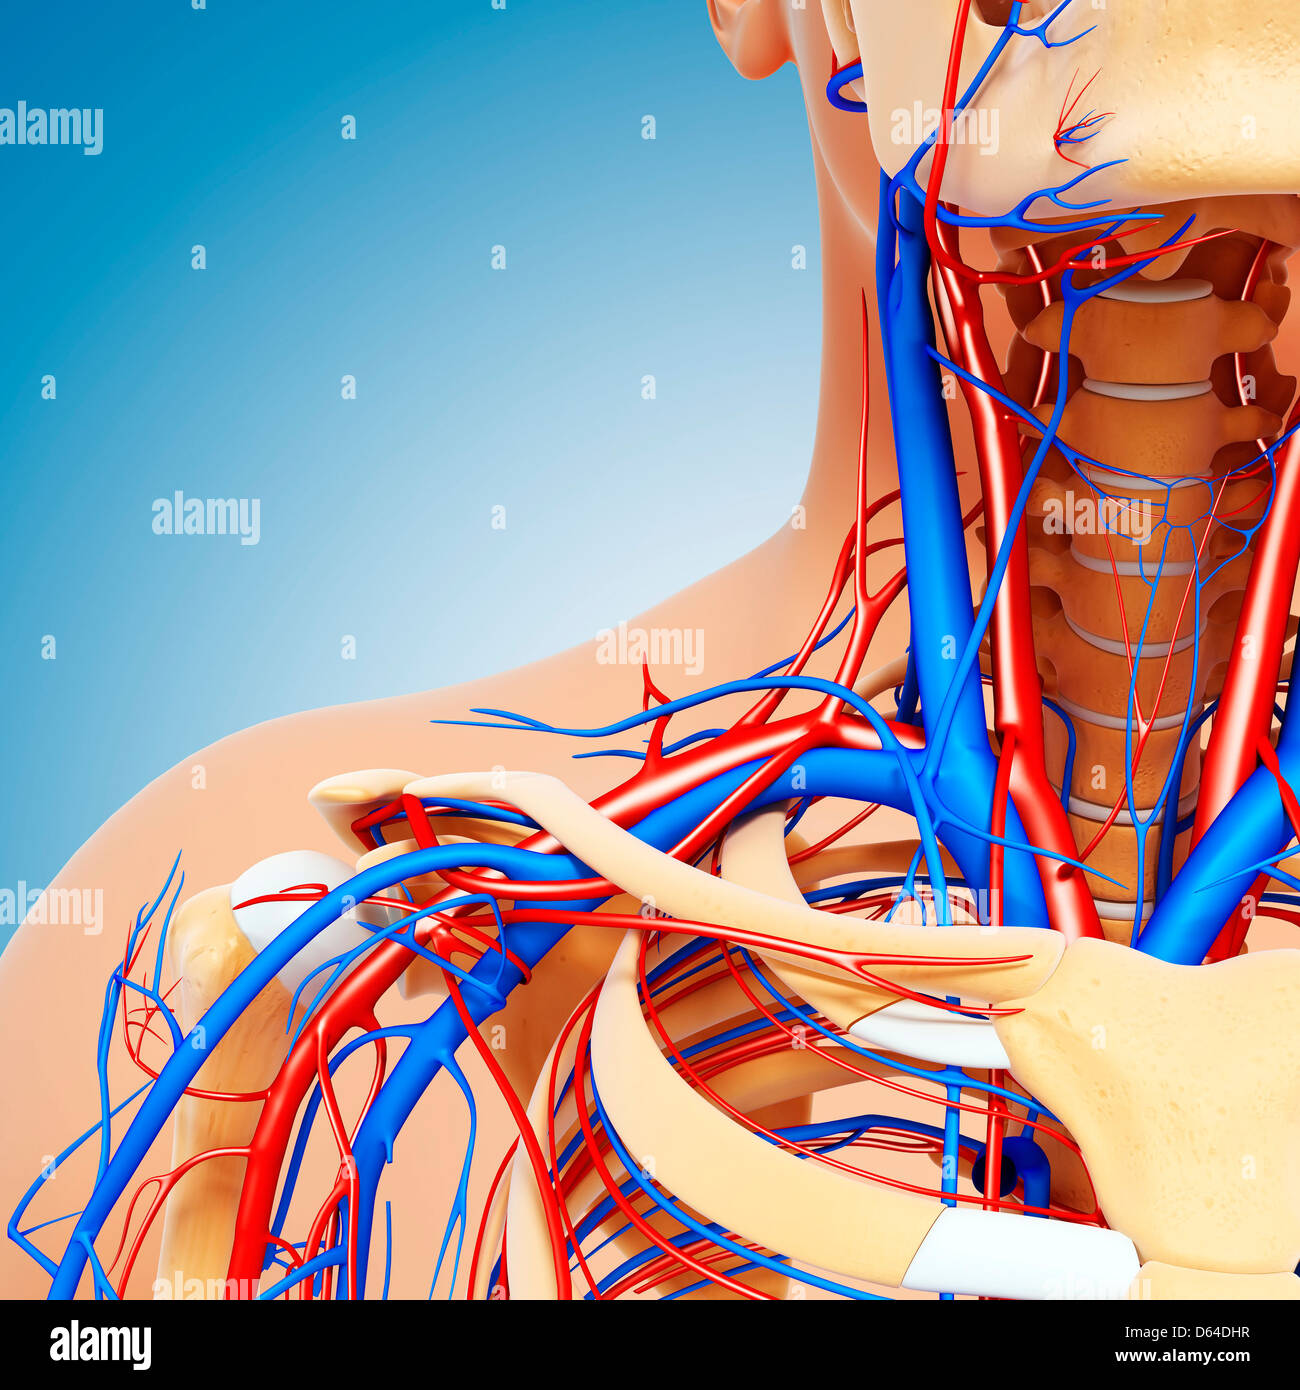 Upper body anatomy, artwork - Stock Image